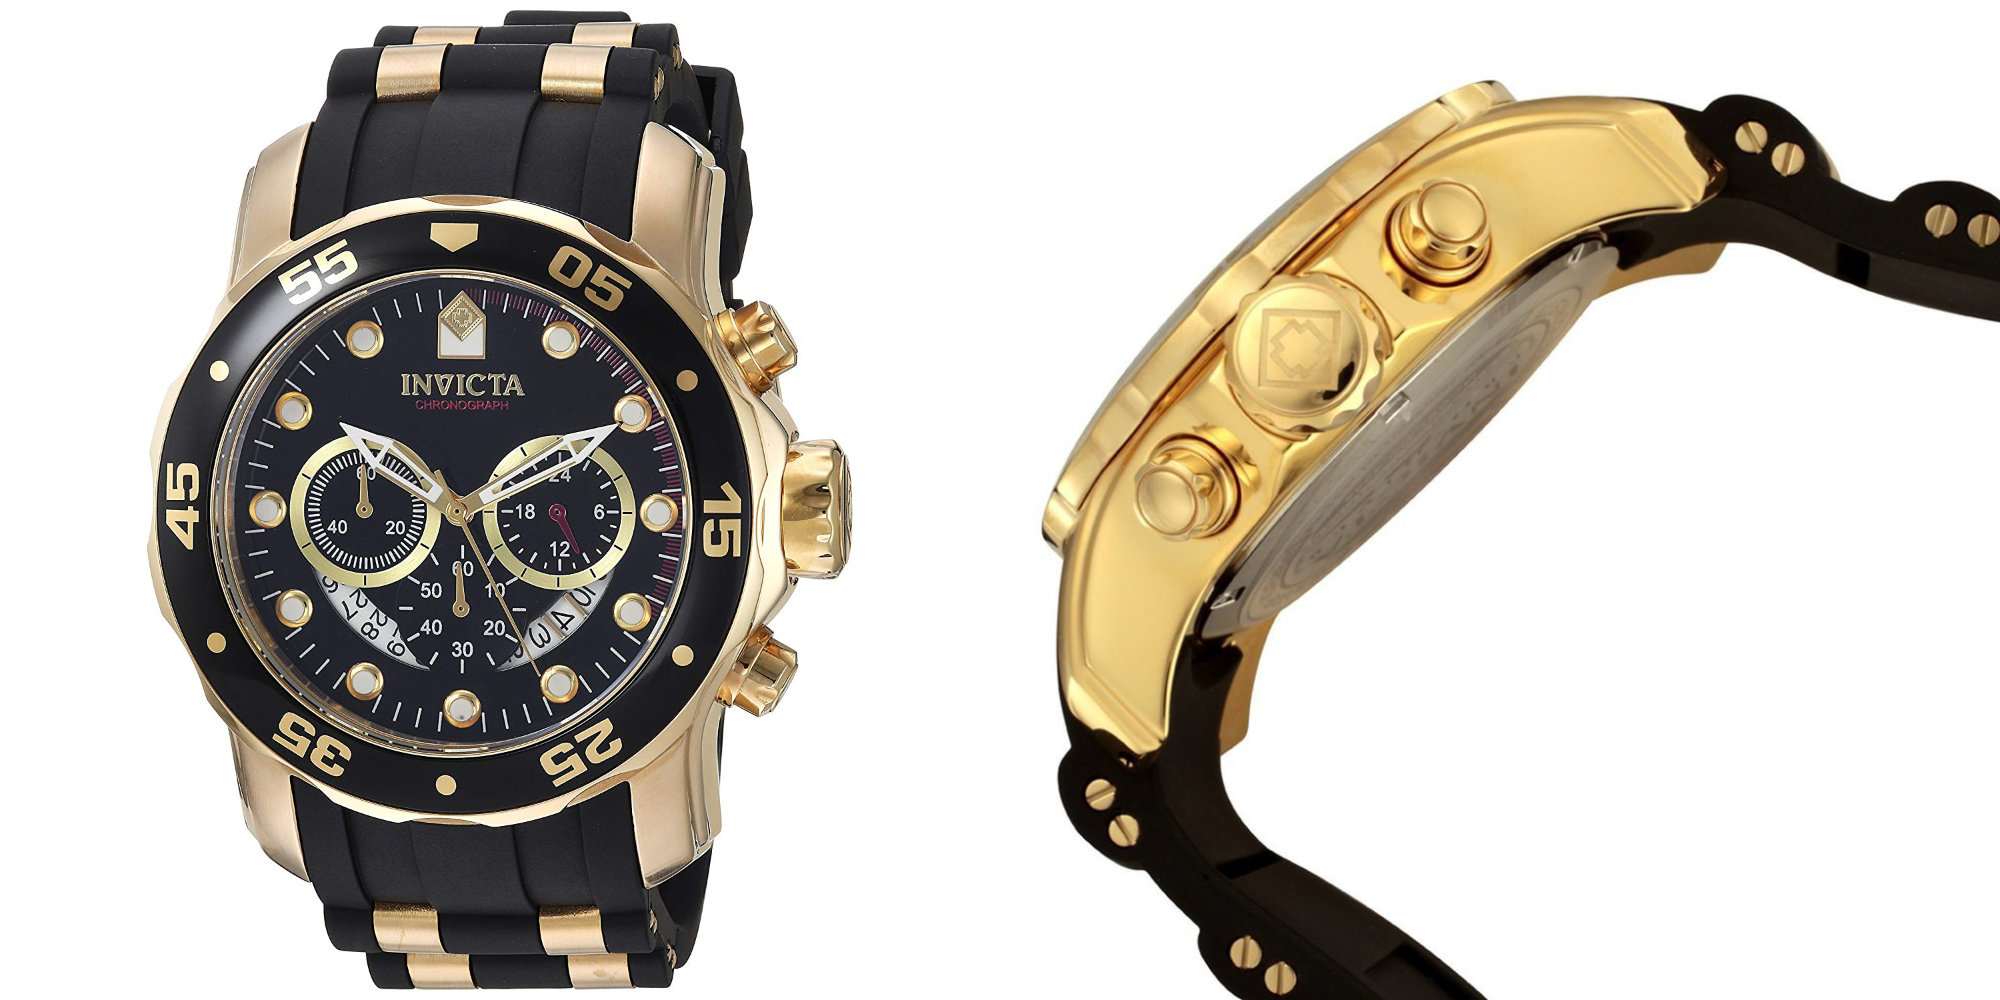 Add Invicta's Pro Diver Watch to your collection for $62 shipped (Over 30% off)